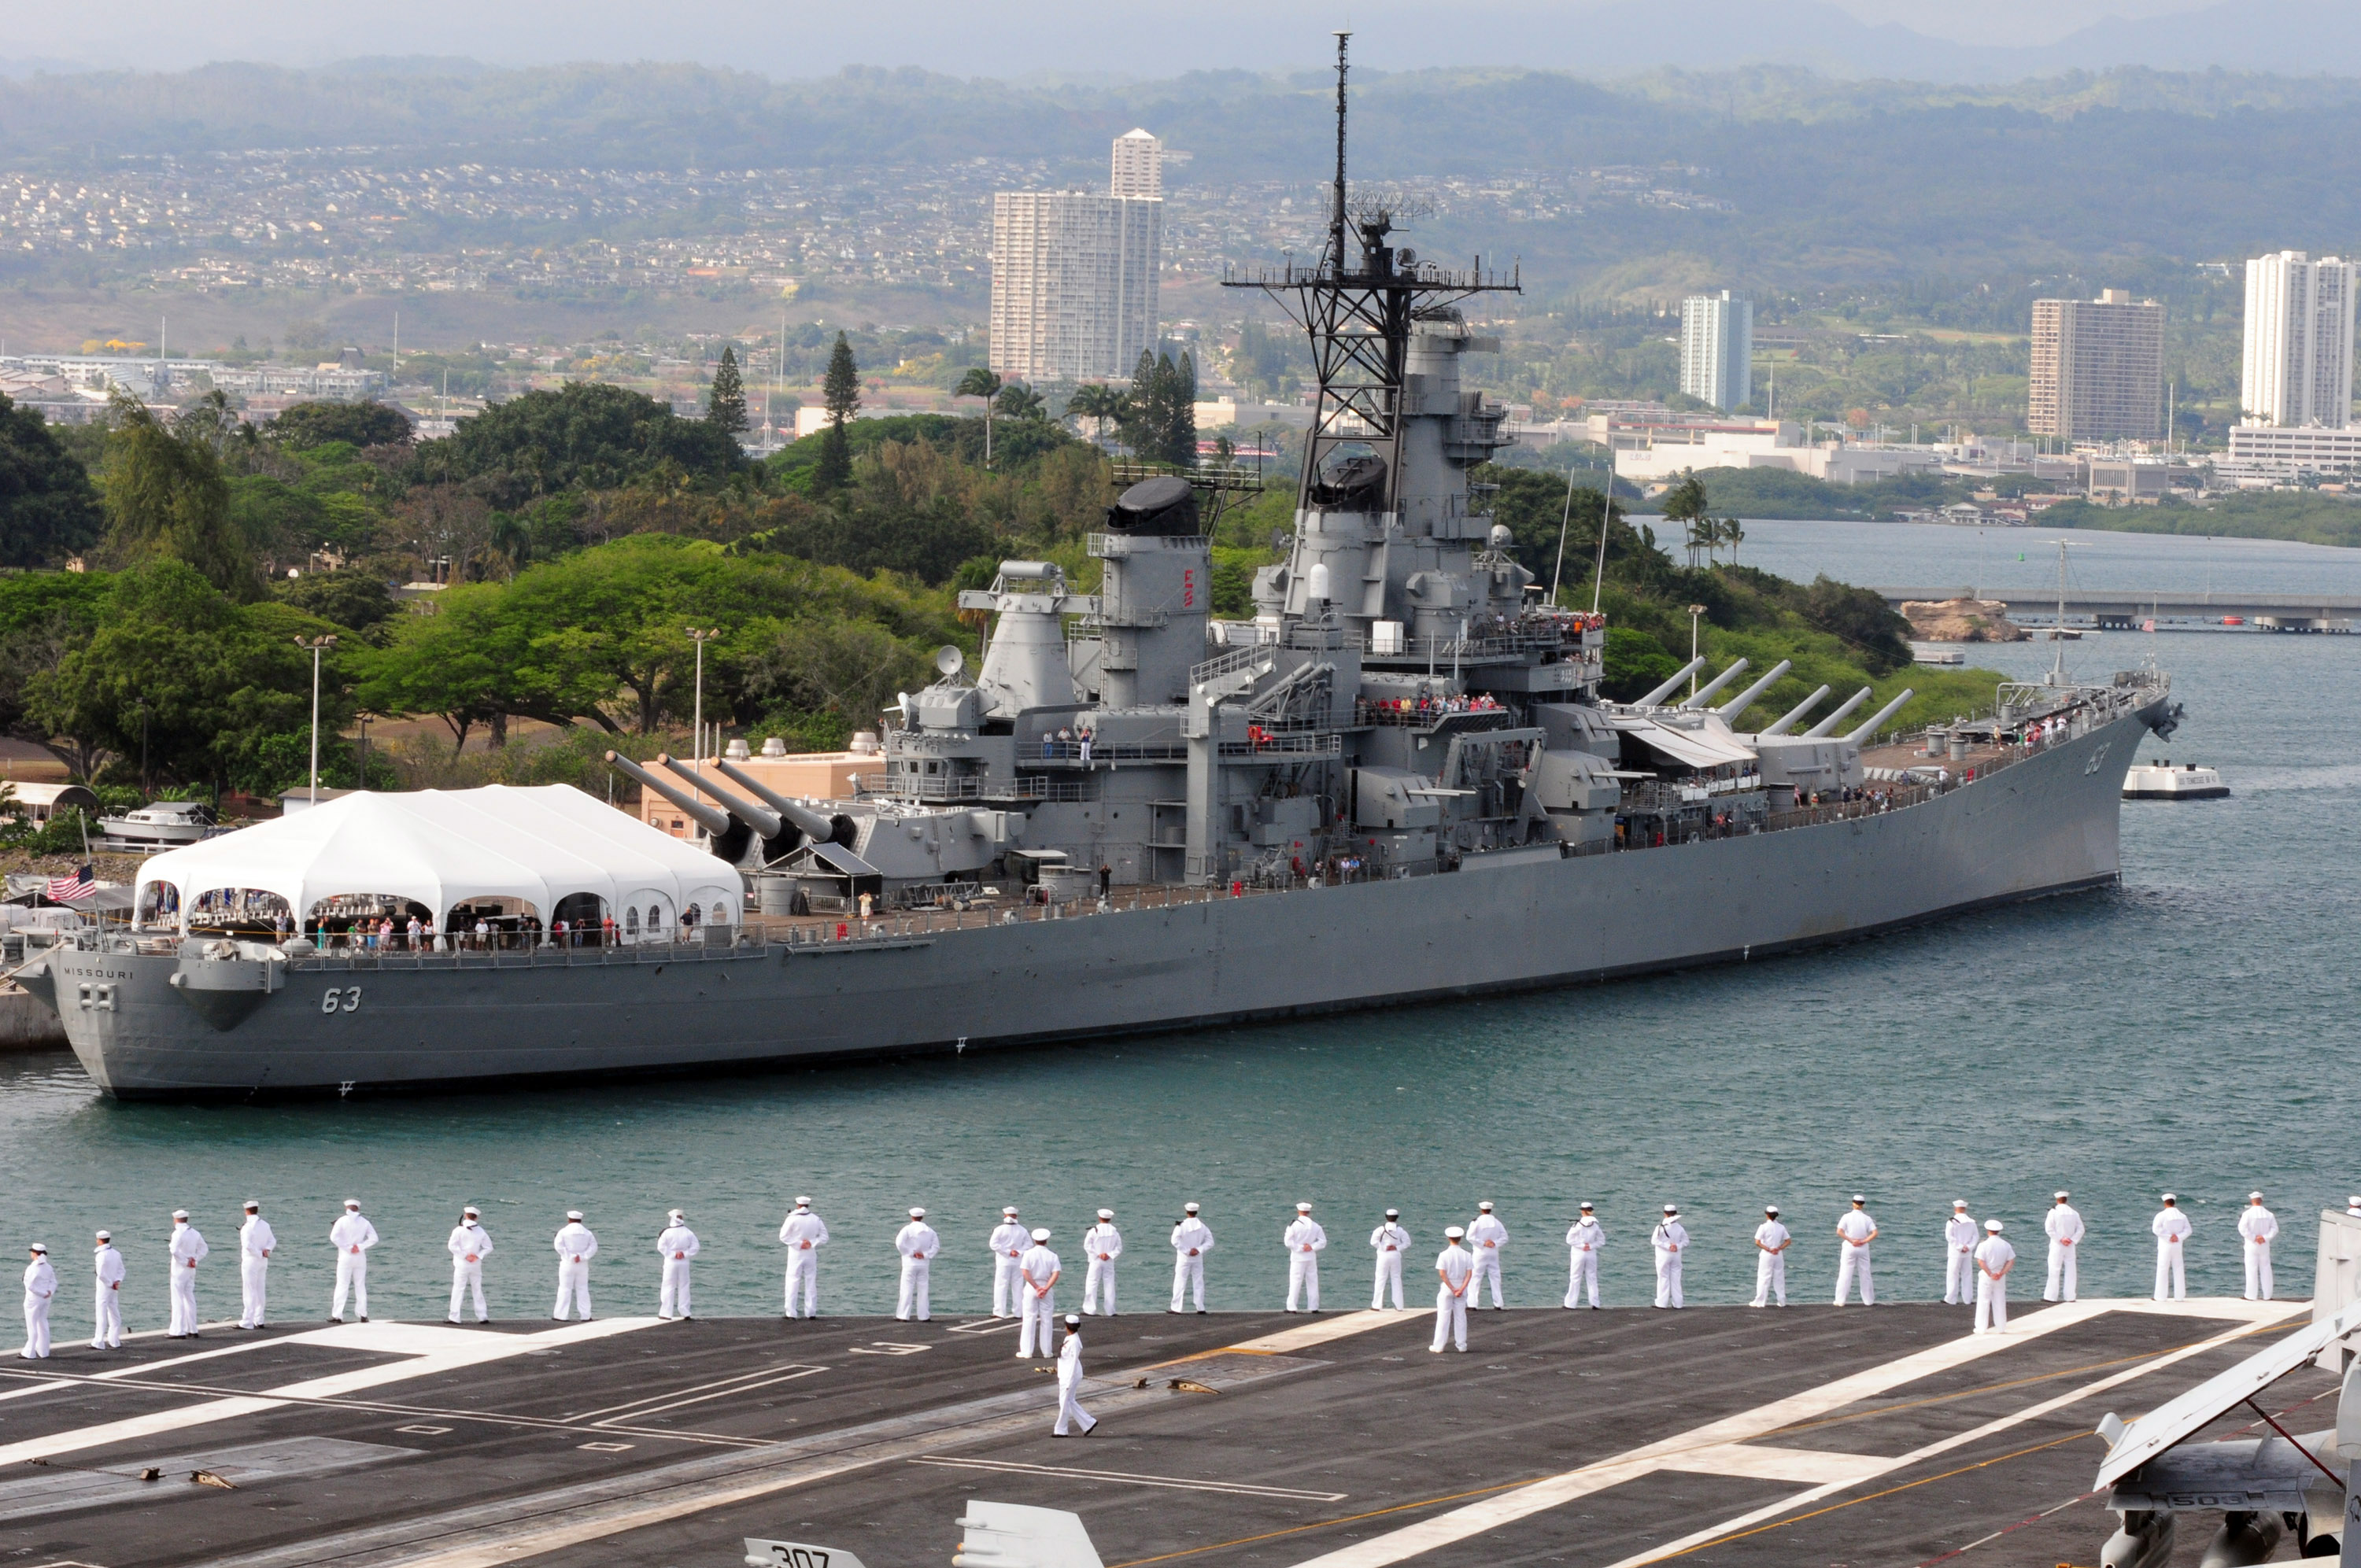 uss missouri docked at pearl harbor, dark green trees in the background, line of sailors in white uniform salute from the dock